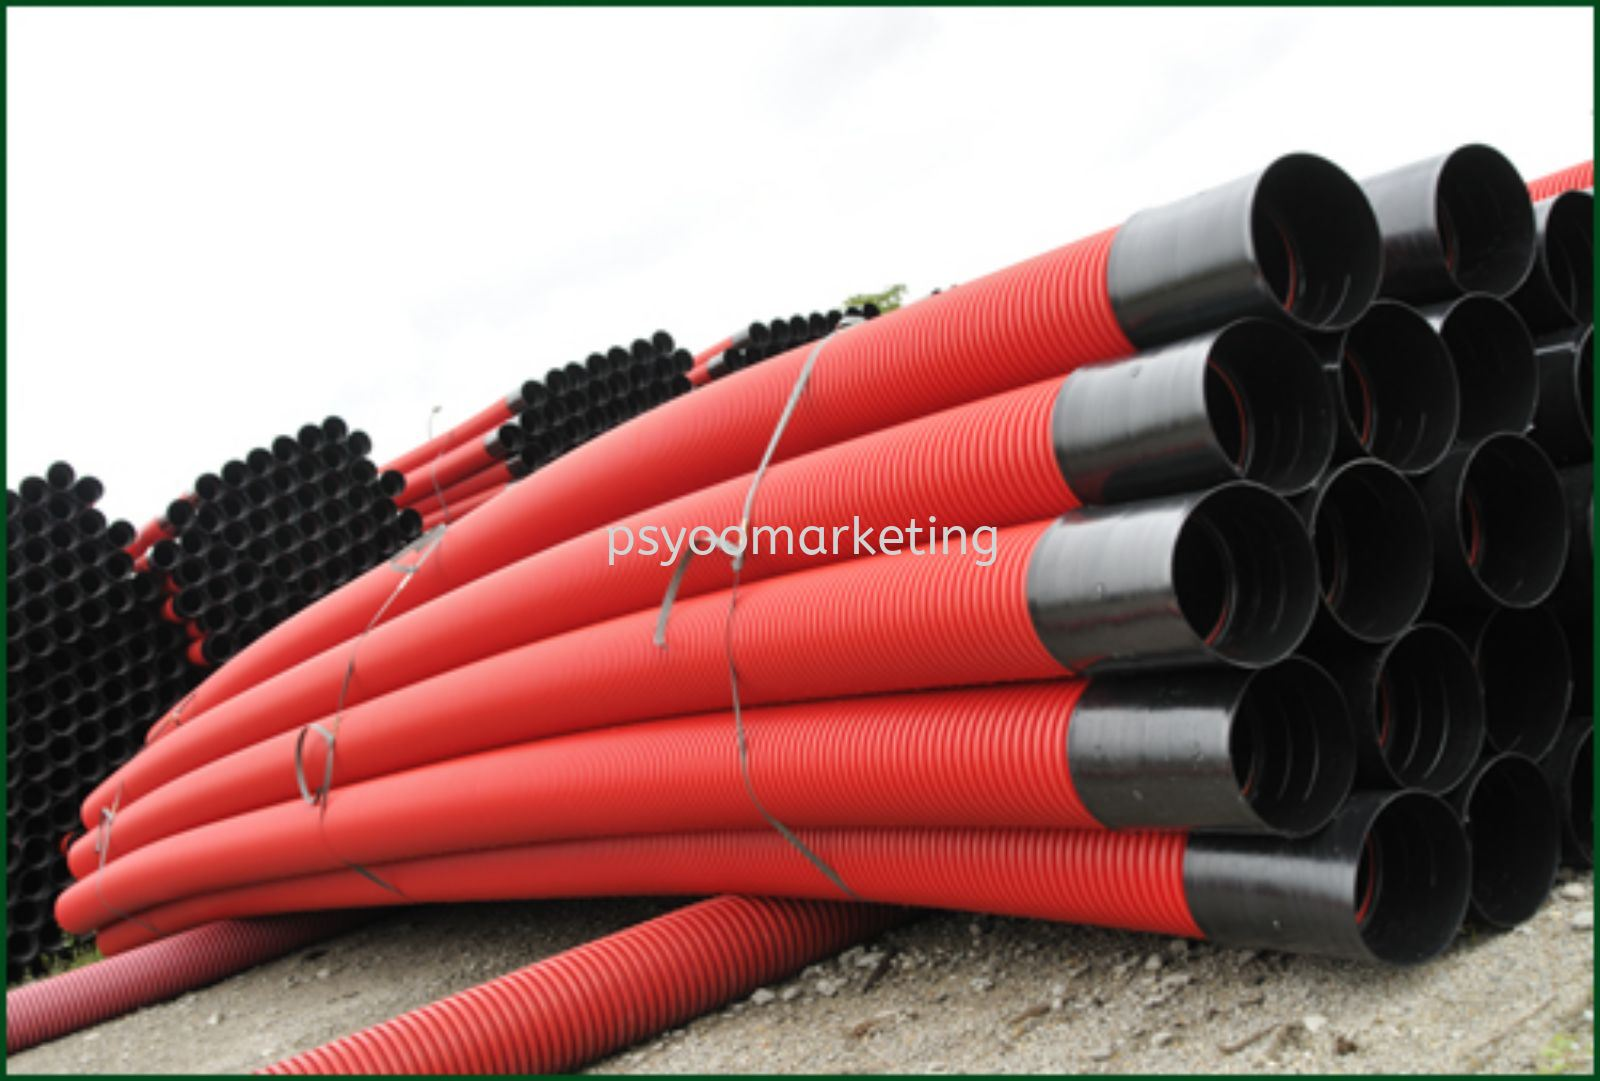 100MM x 6M HDPE DOUBLE WALL Corrugated pipe with socket red/black